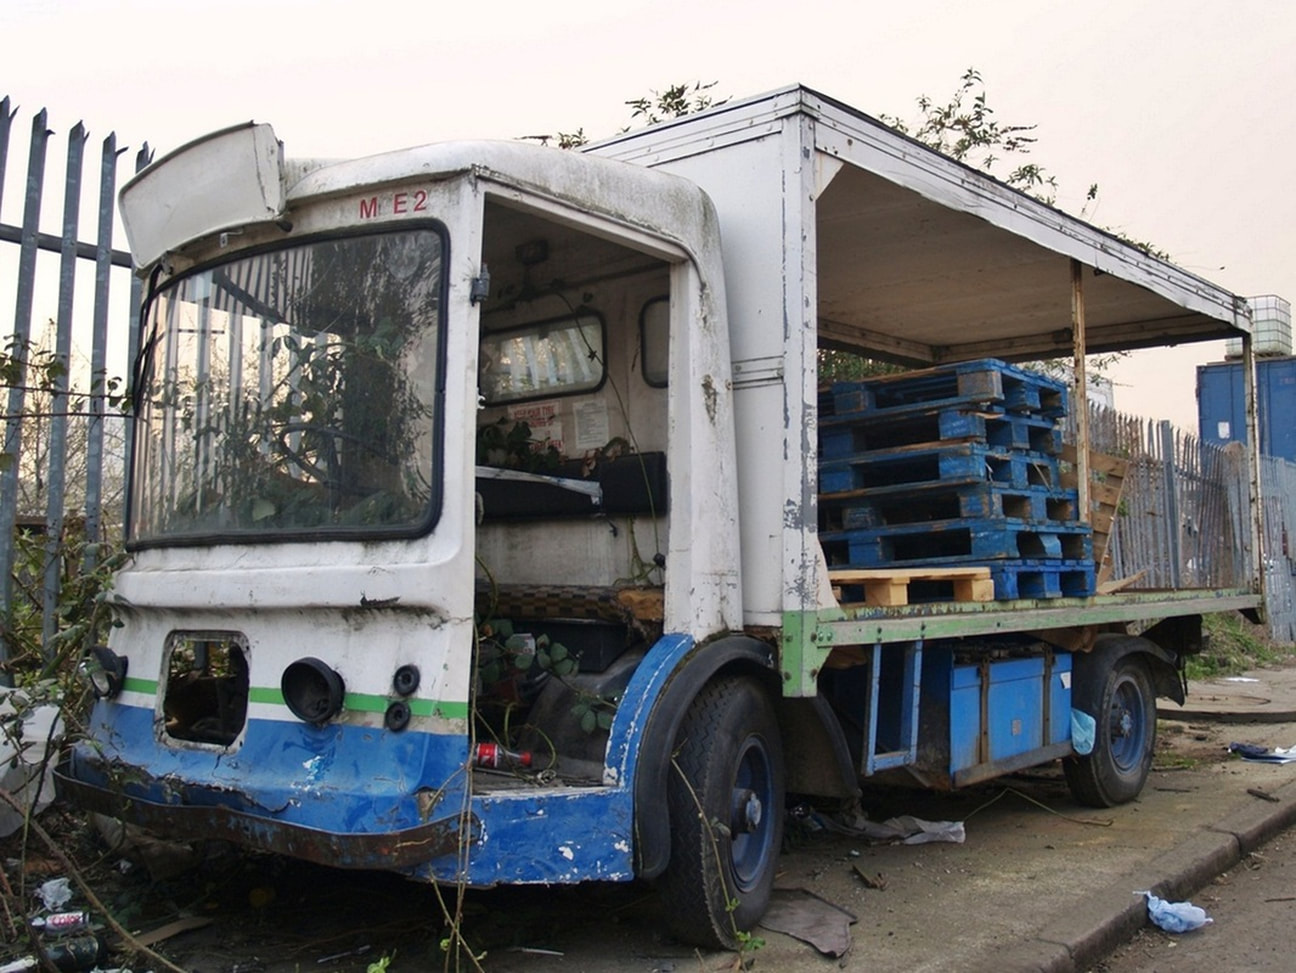 Abandoned milkfloat in Bromley By Bow